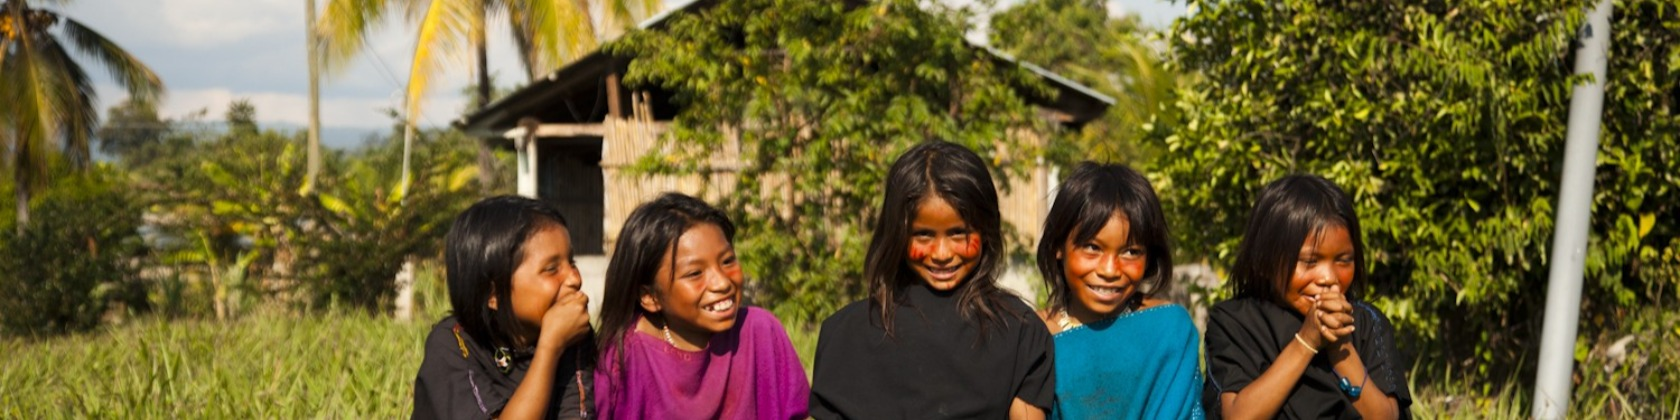 Five indigenous children pose for a photo in front of their rural home